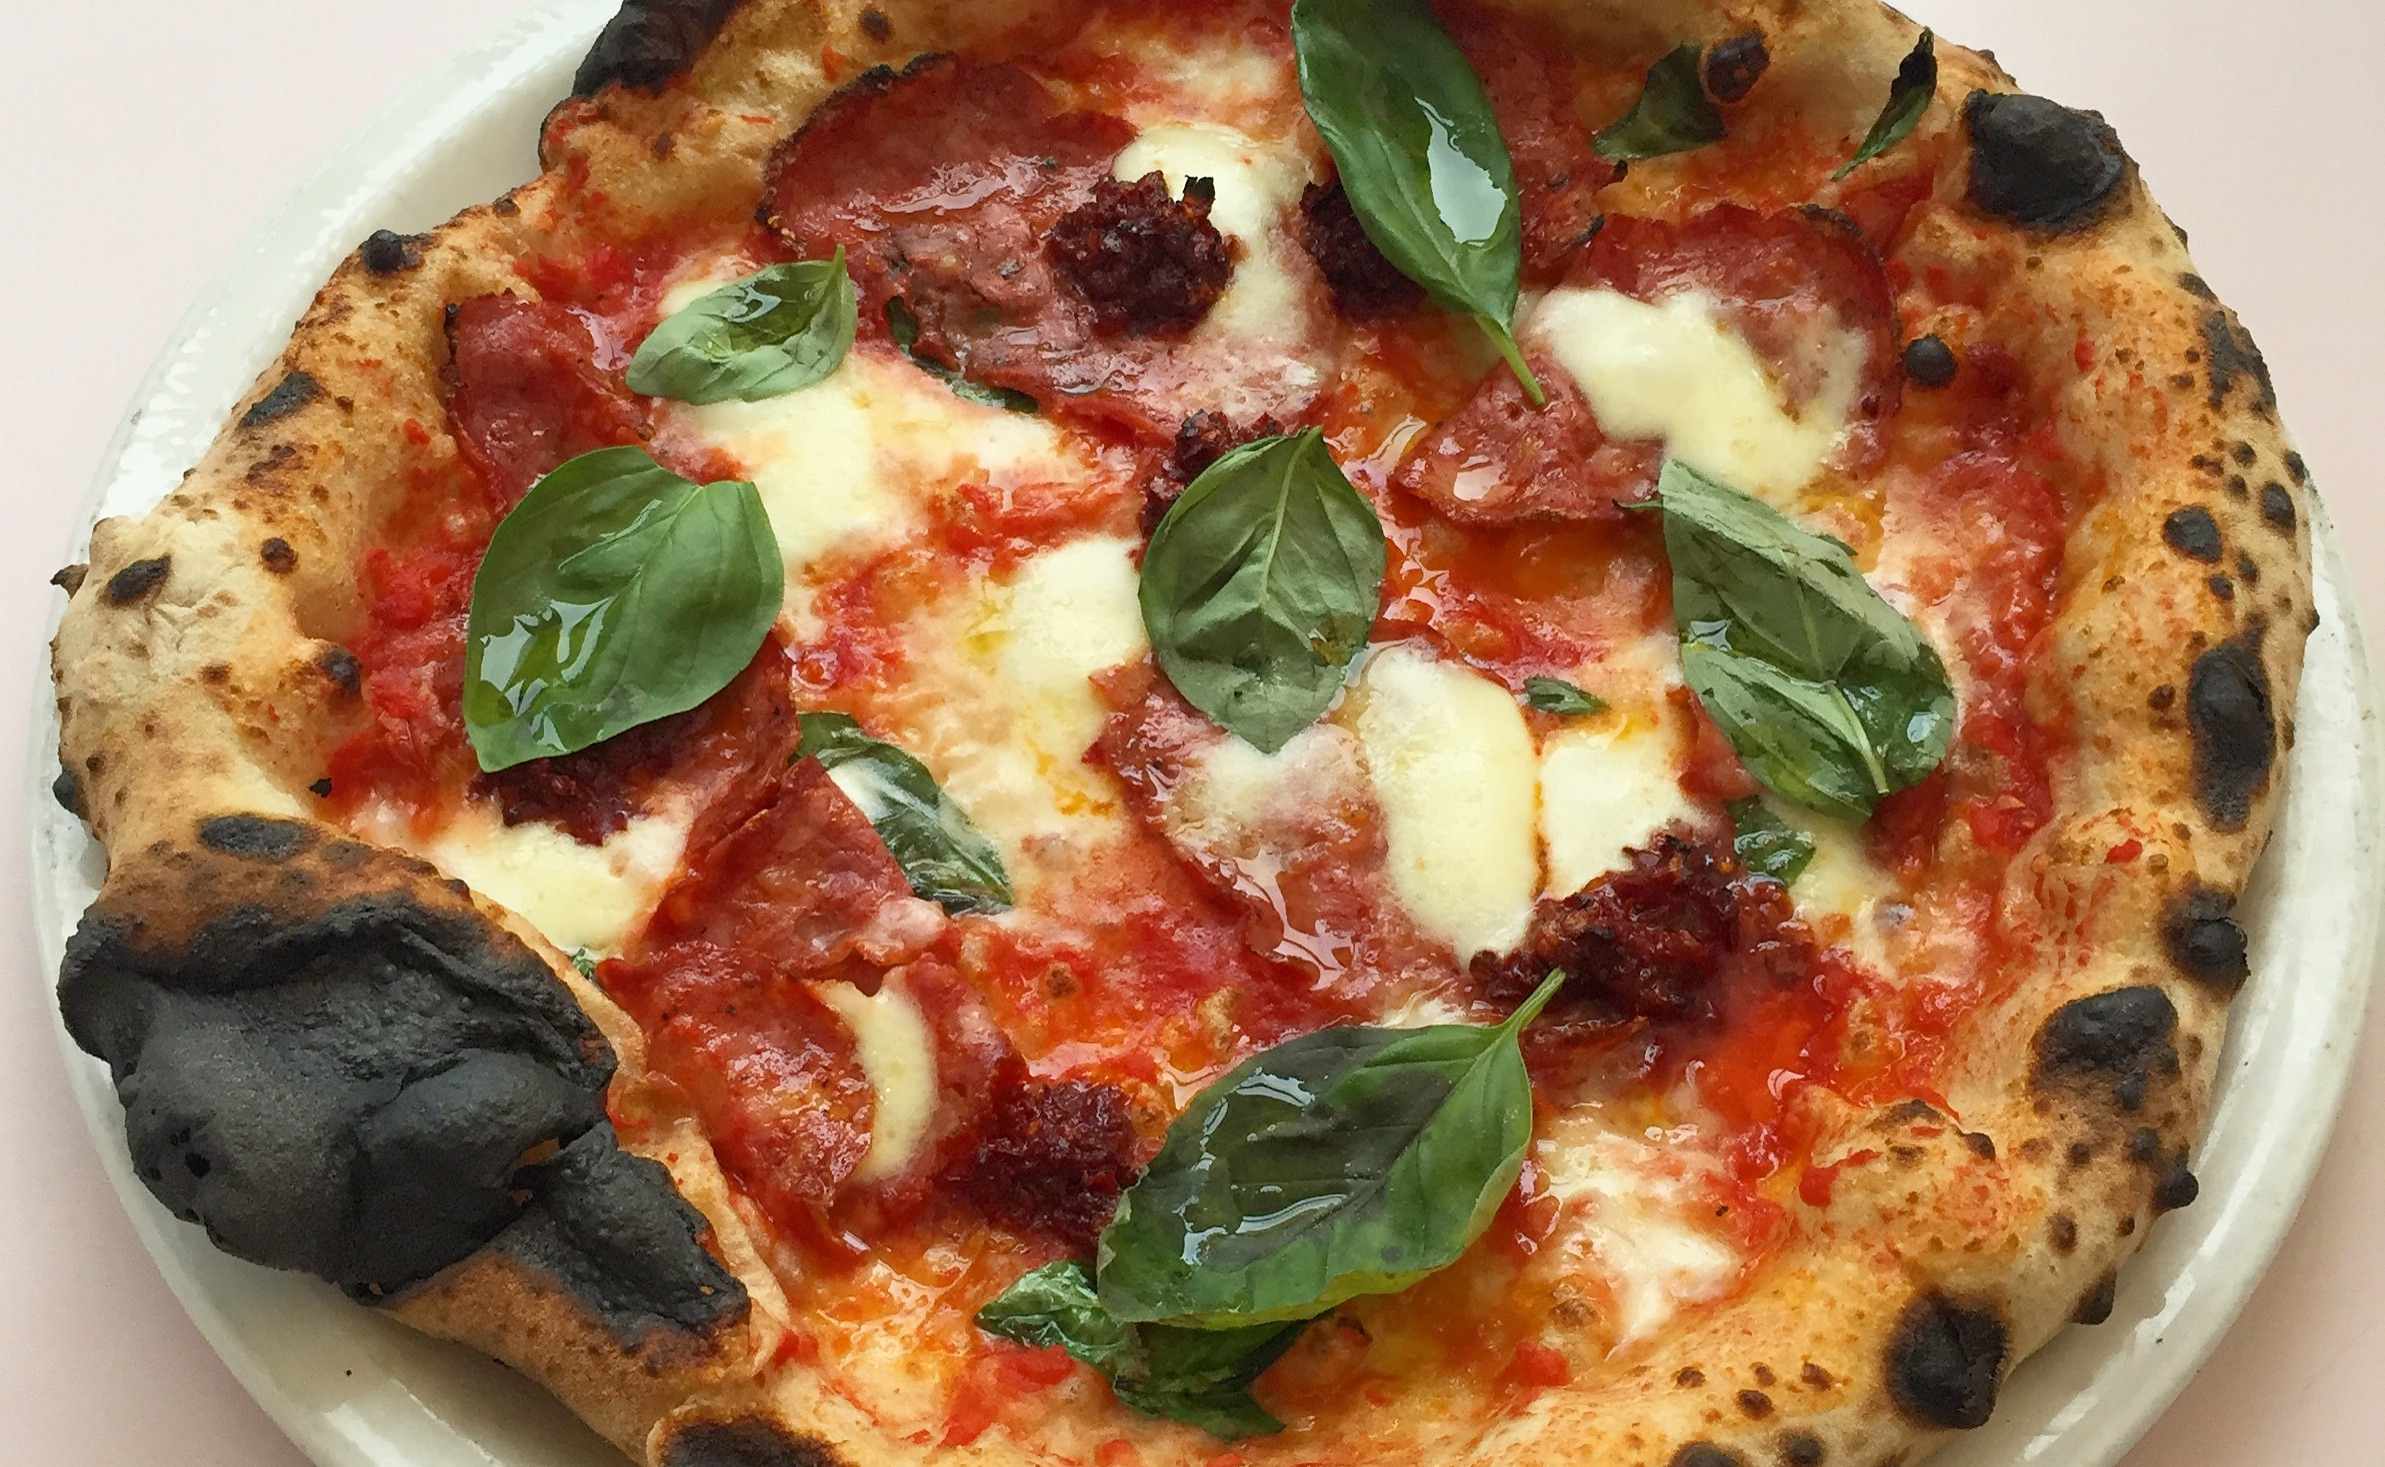 Sourdough pizza with tomato, mozzarella, basil, and 'nduja sausage at Theo's Pizzeria in Camberwell, one of the best restaurants in Camberwell, south London